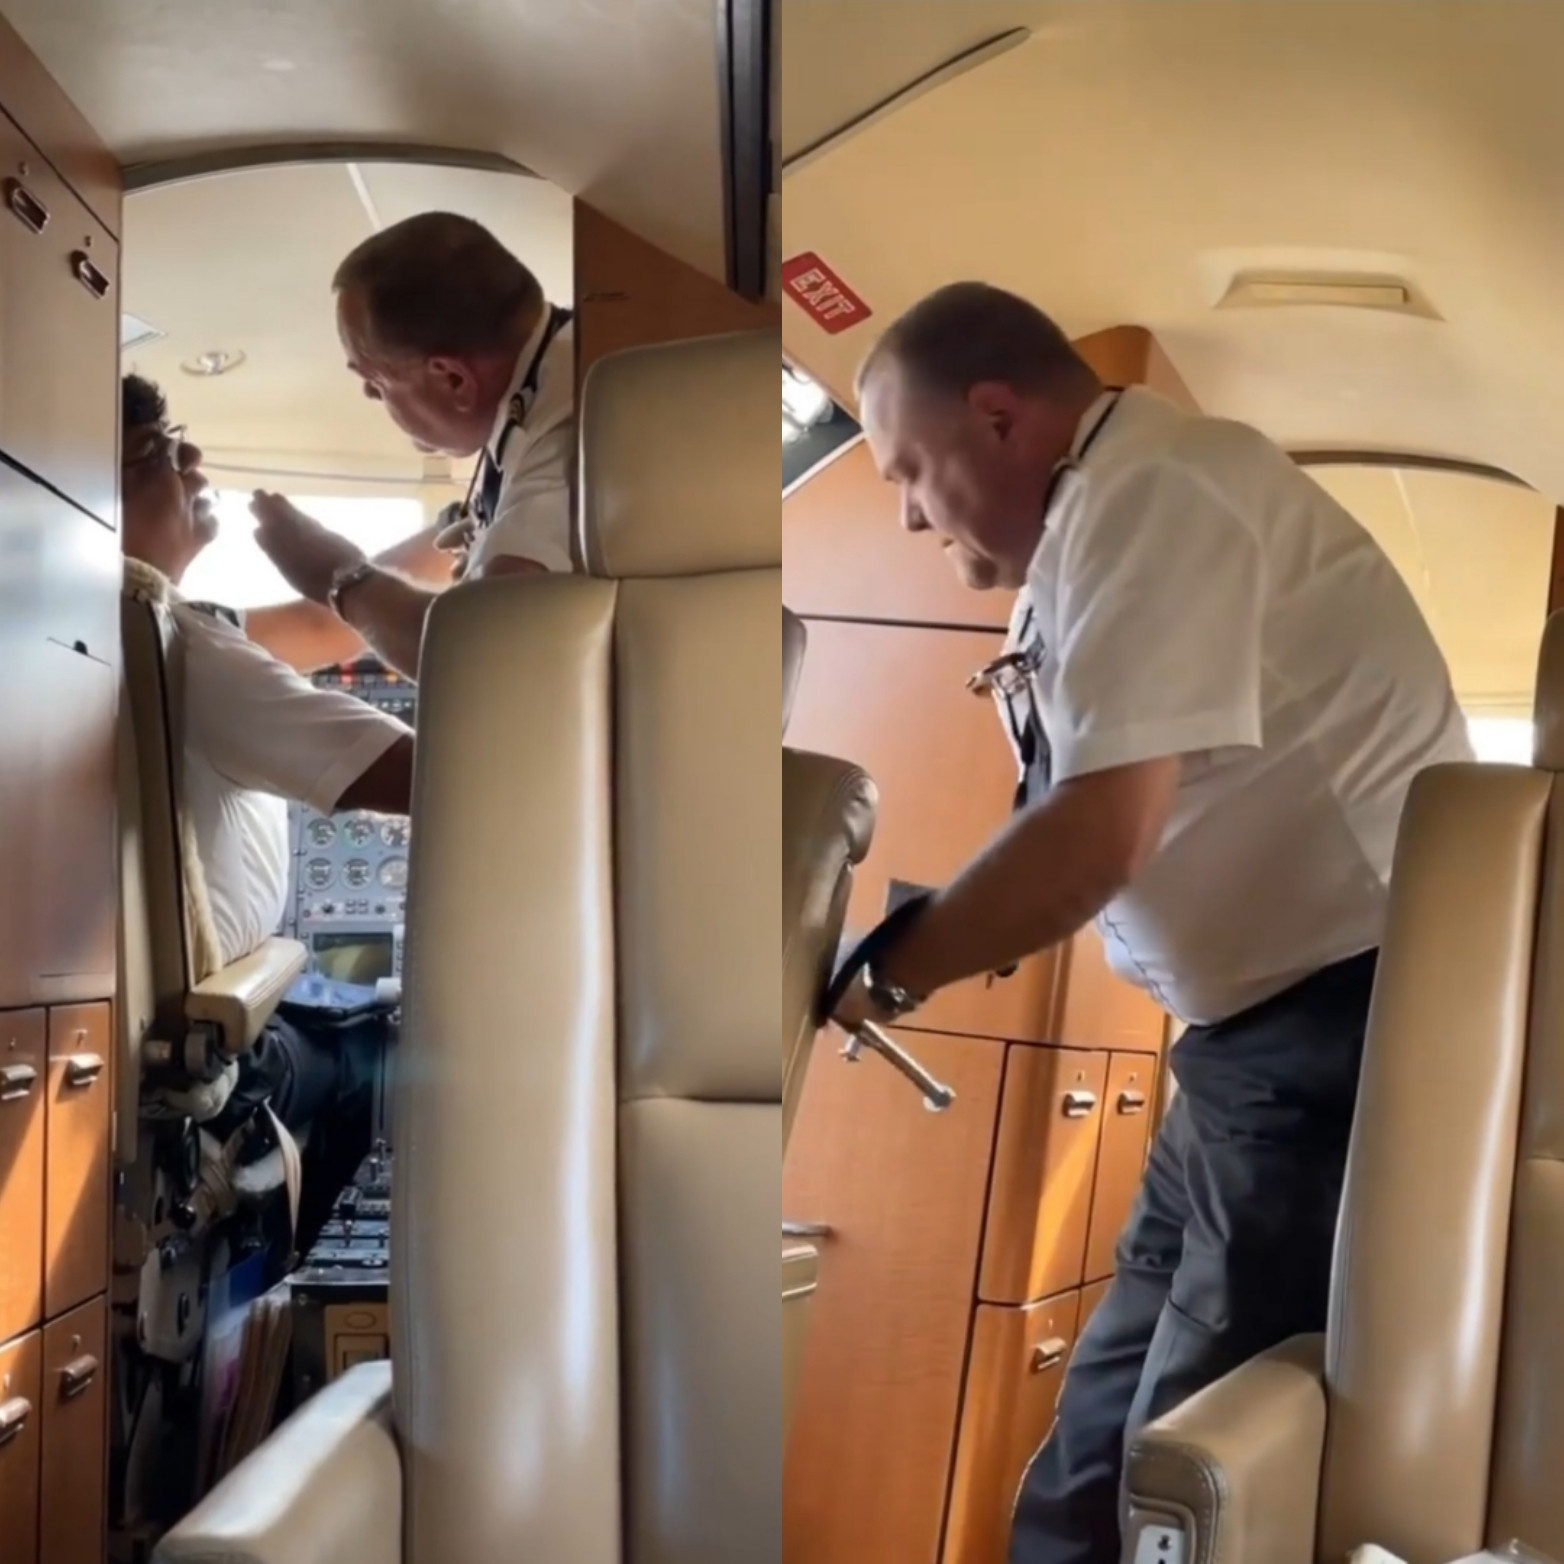 Co-pilot storms out of the plane after argument